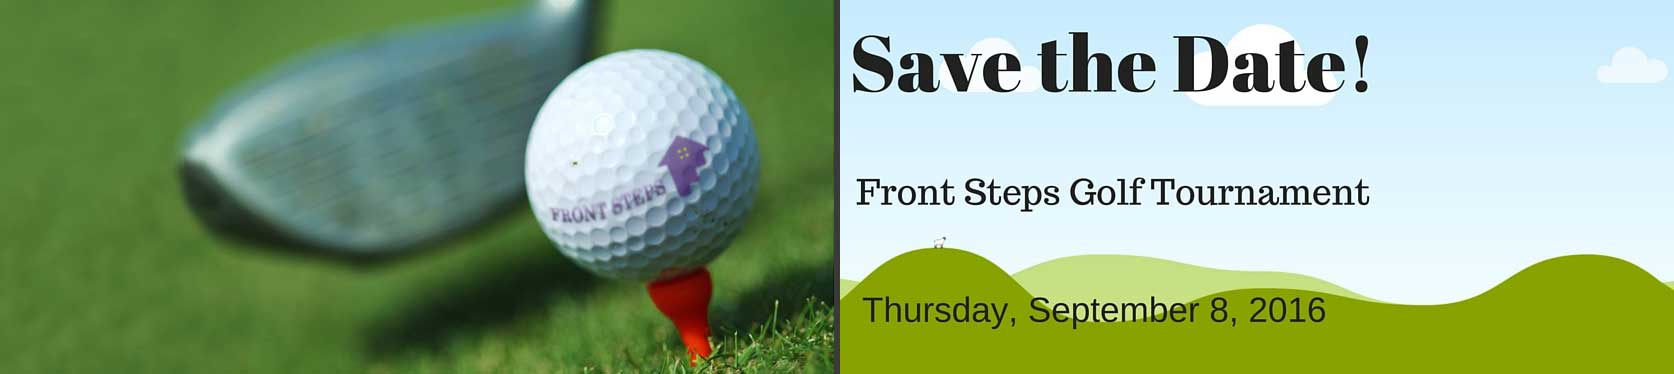 SaveTheDate-GolfTournament